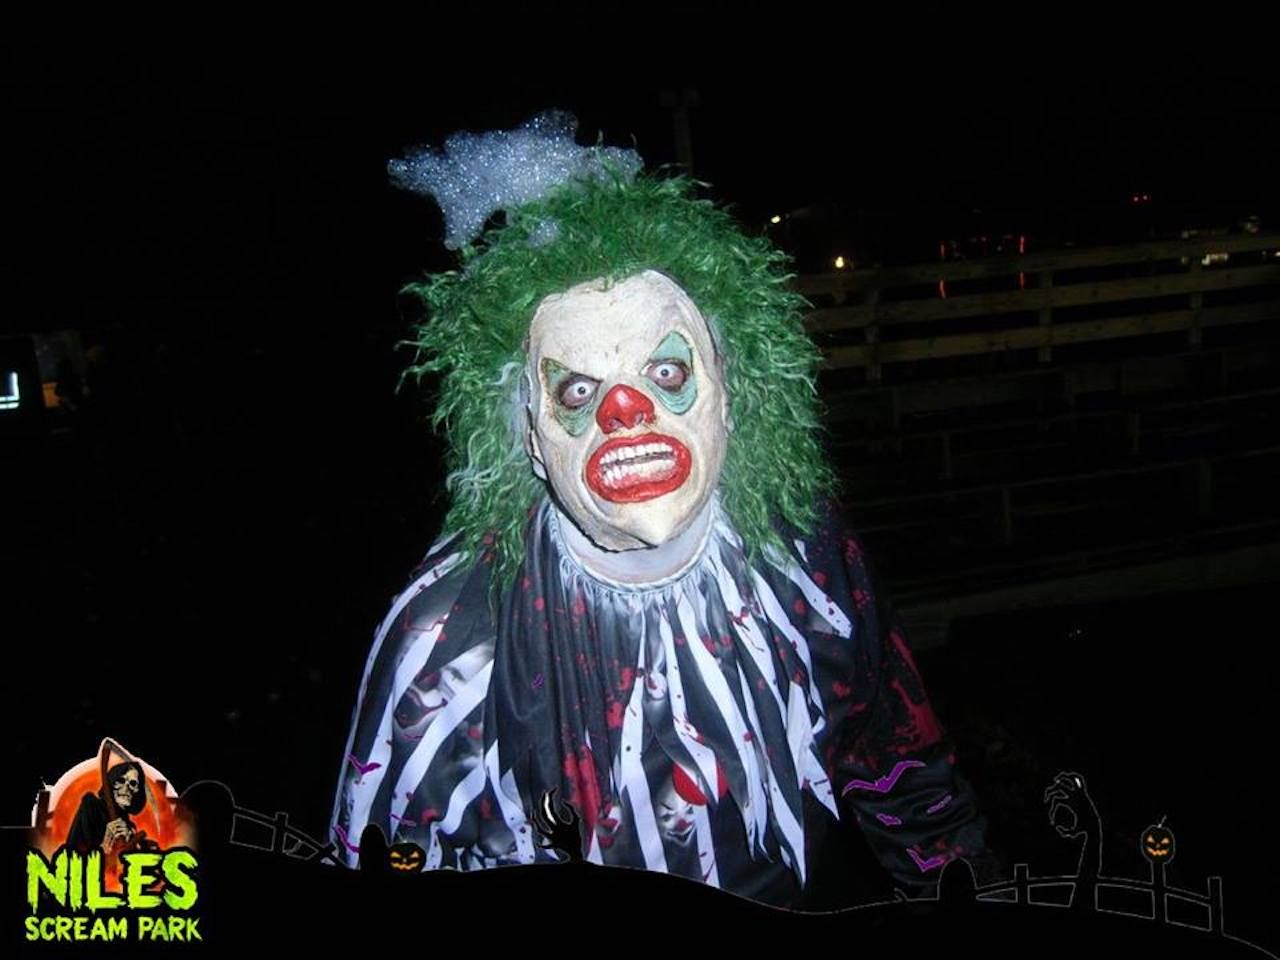 Creepy clown at Niles Scream Park